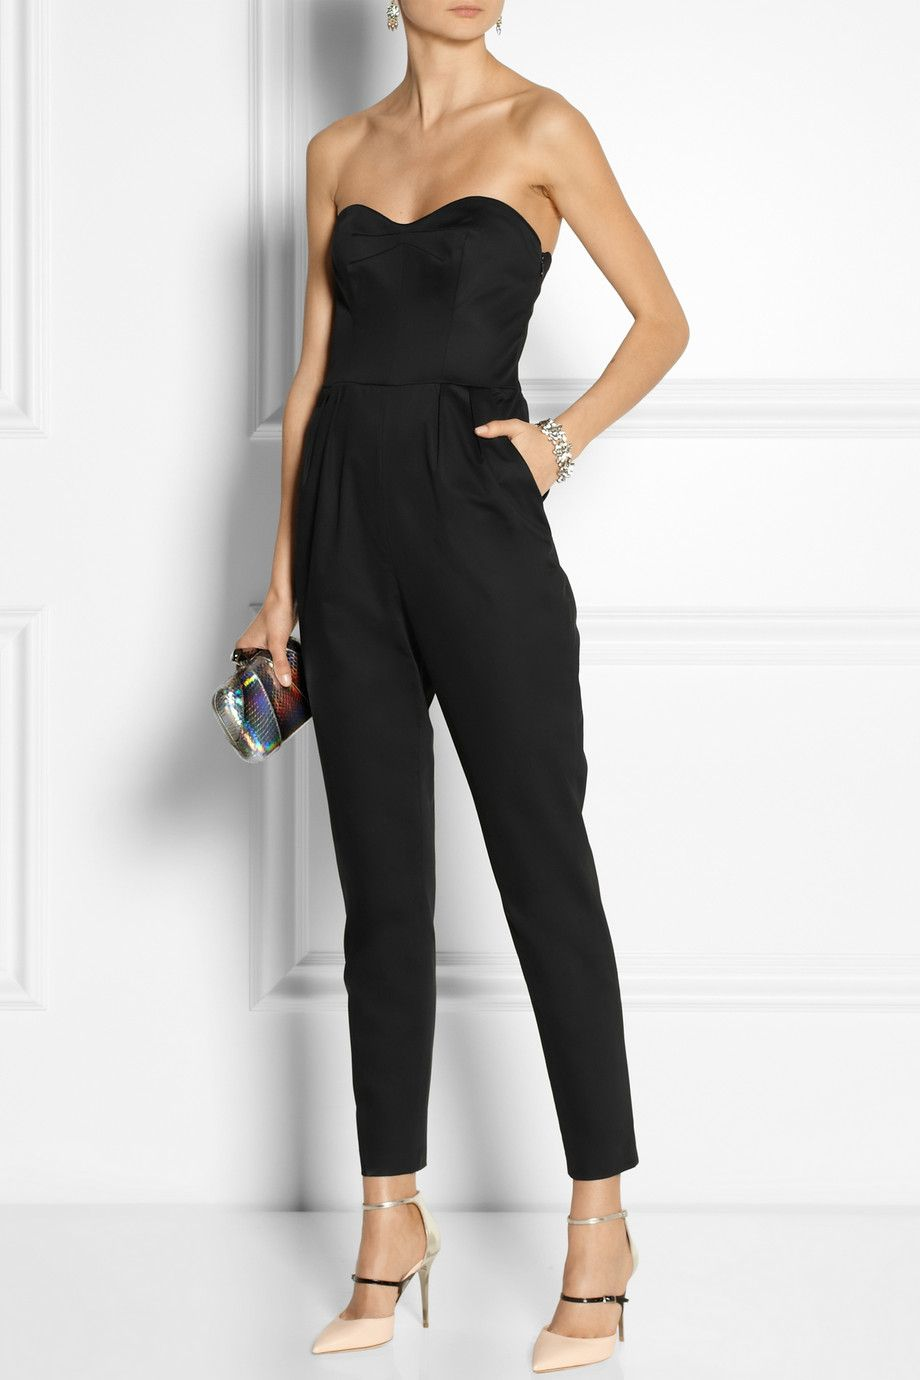 1599f7493ae MILLY Strapless matte-satin jumpsuit  395 EDITOR S NOTES Milly s black  matte-satin jumpsuit is a chic alternative to the party dress.